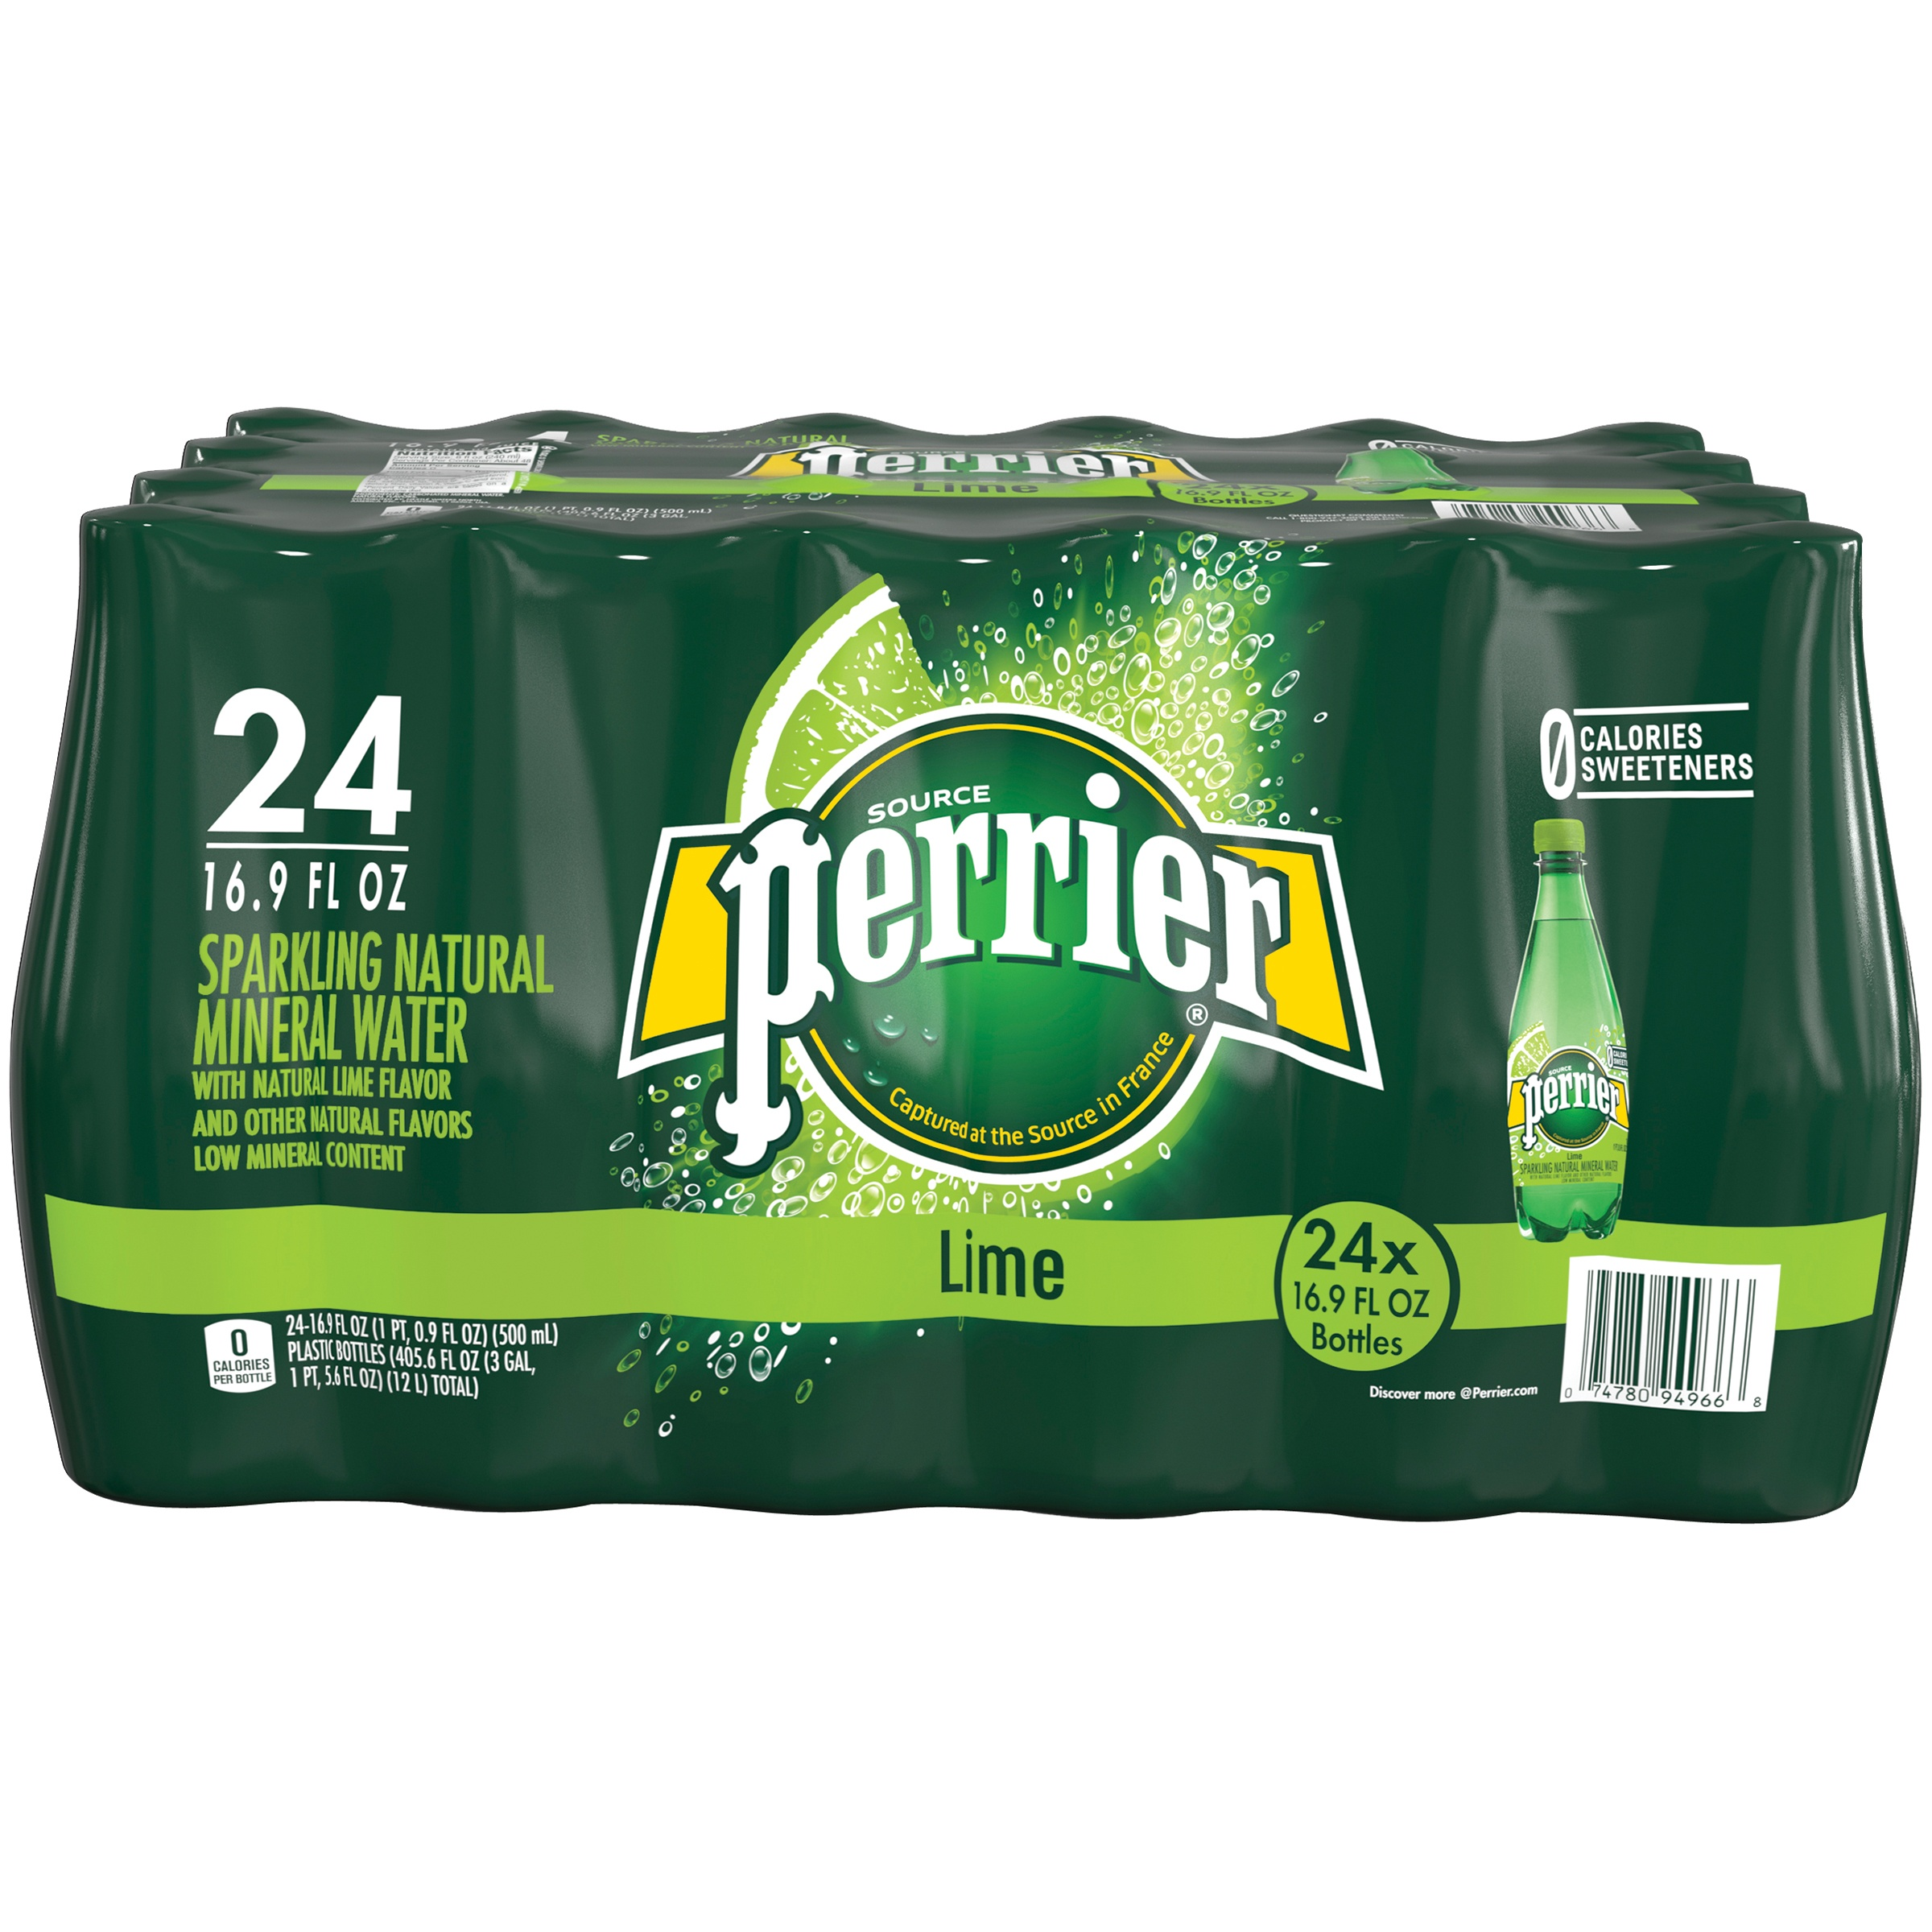 PERRIER Sparkling Natural Mineral Water, Lime 16.9-ounce plastic bottles